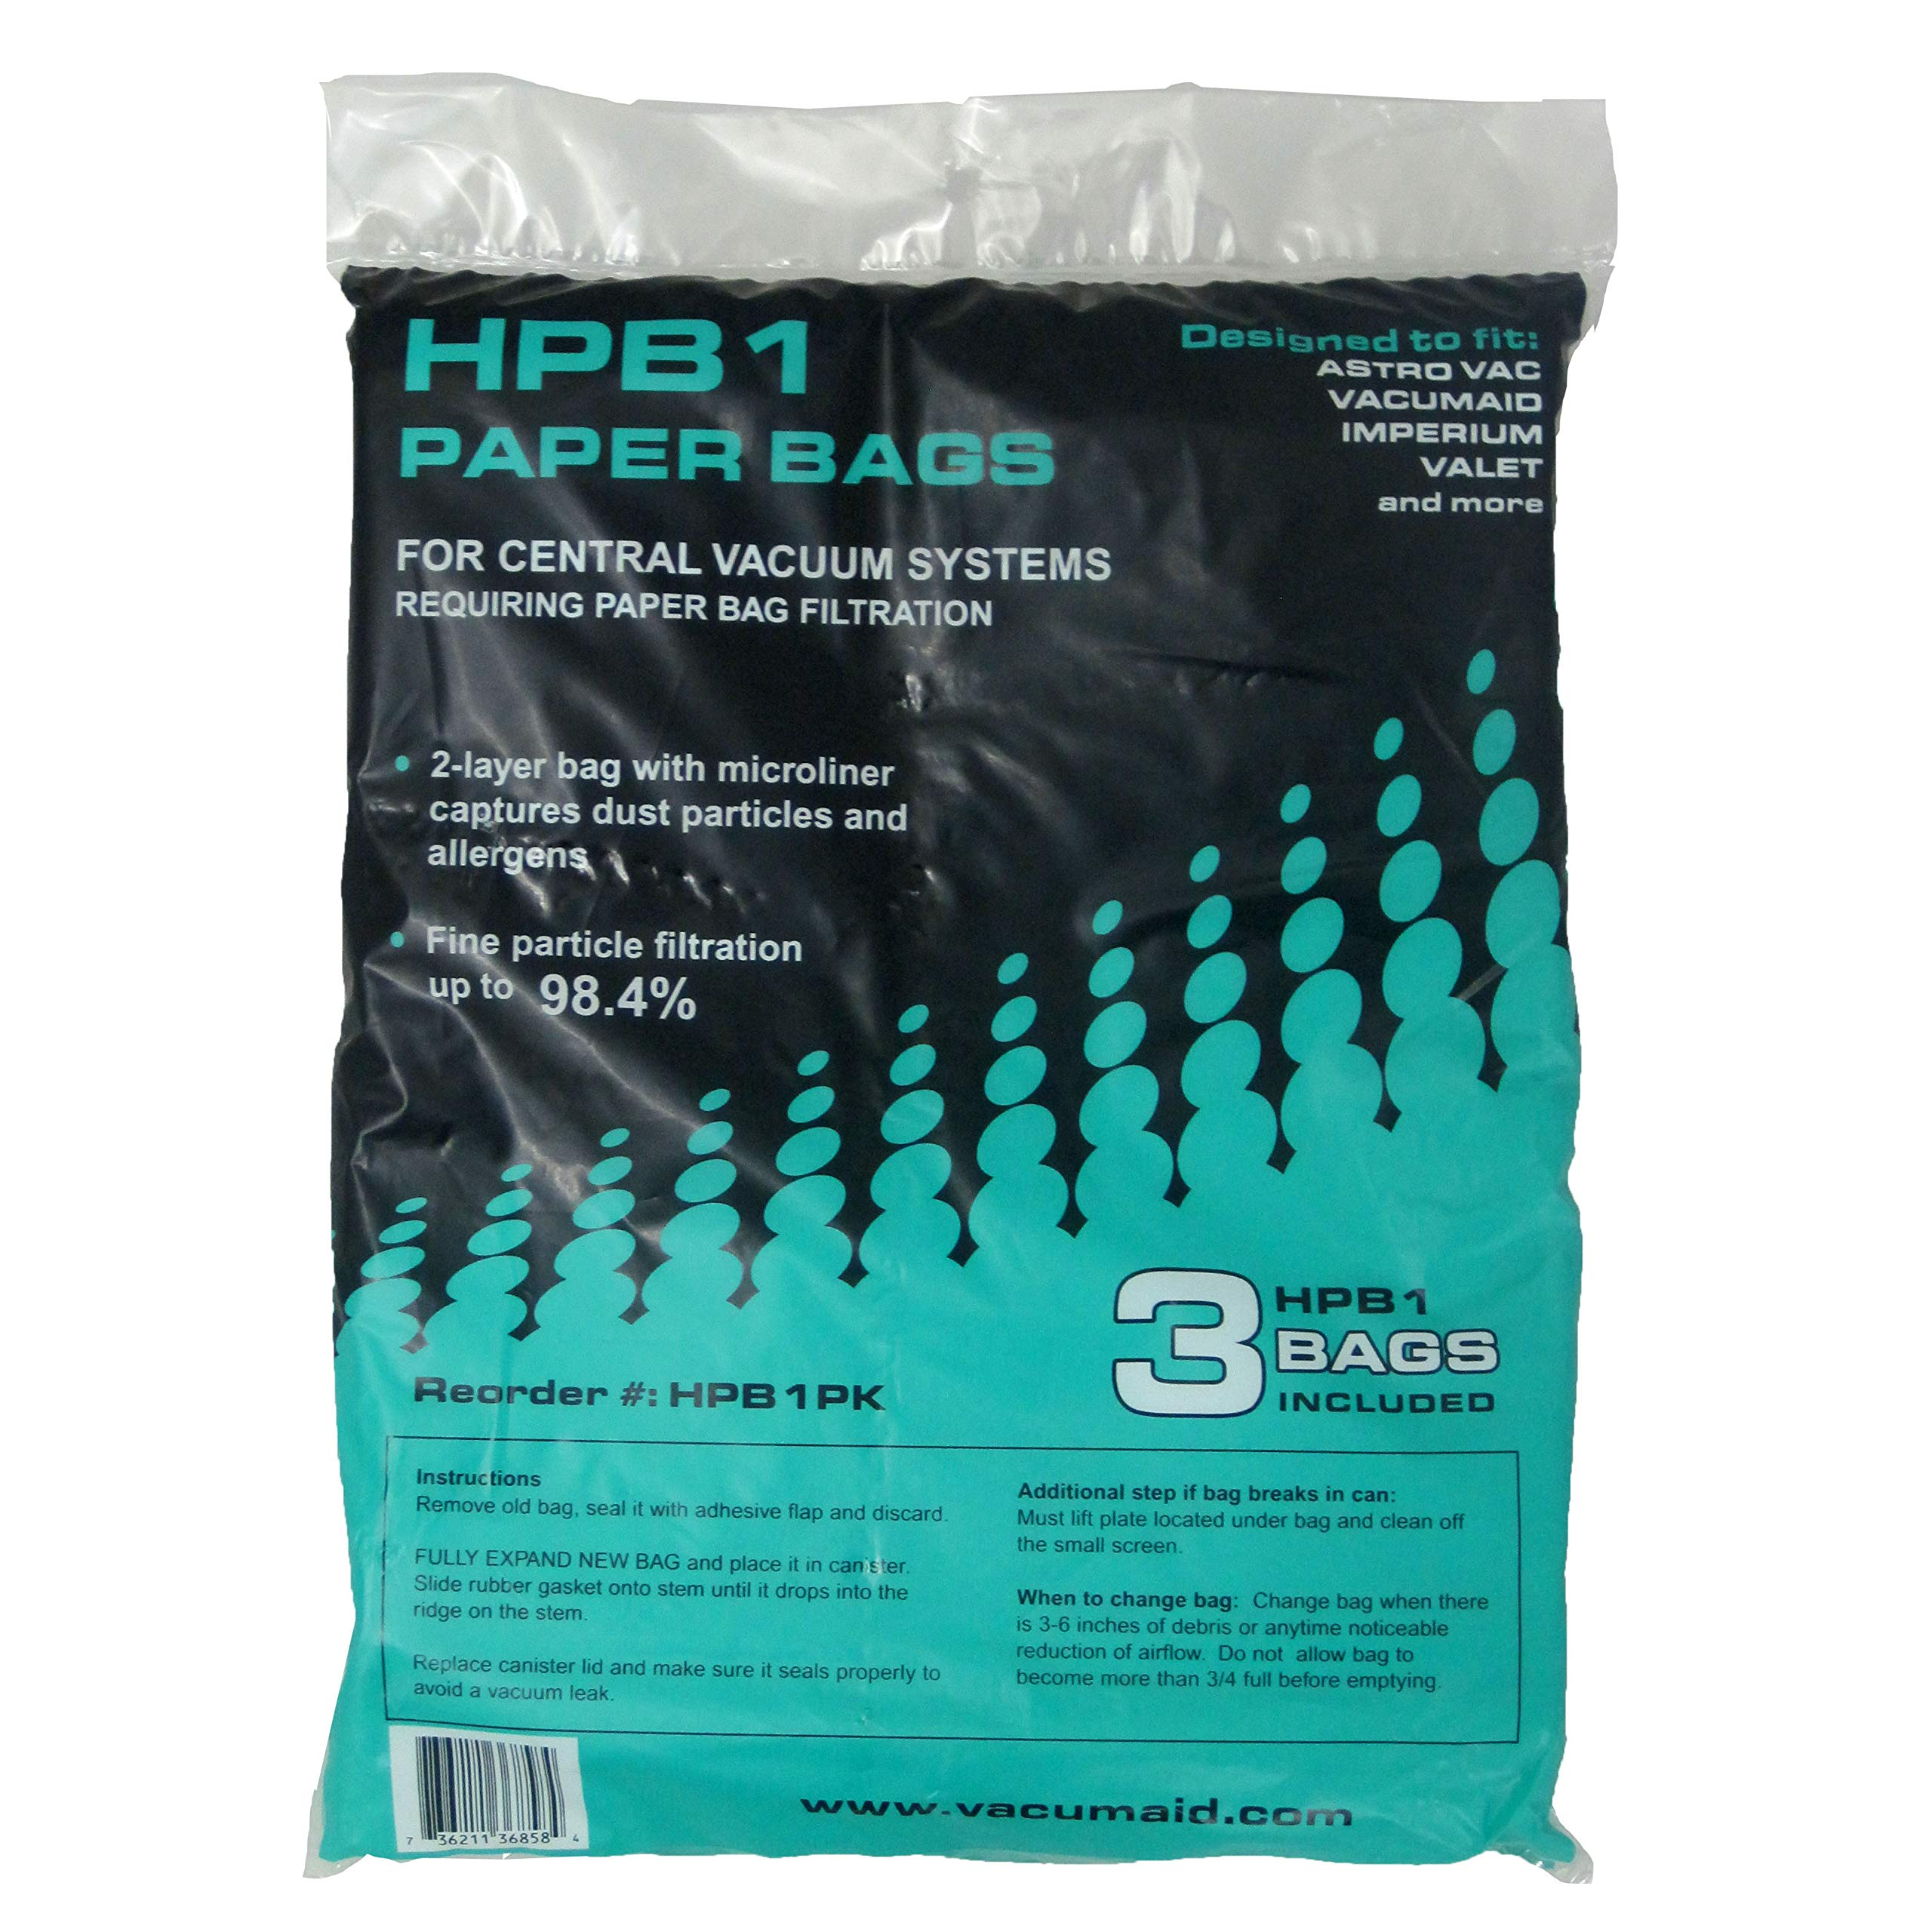 HPB1 Sealed Bag (Qty. 3 bags) for VacuMaid Garage Vac, VacuMaid Central Vacuum, AstroVac & Valet Central Vacuum